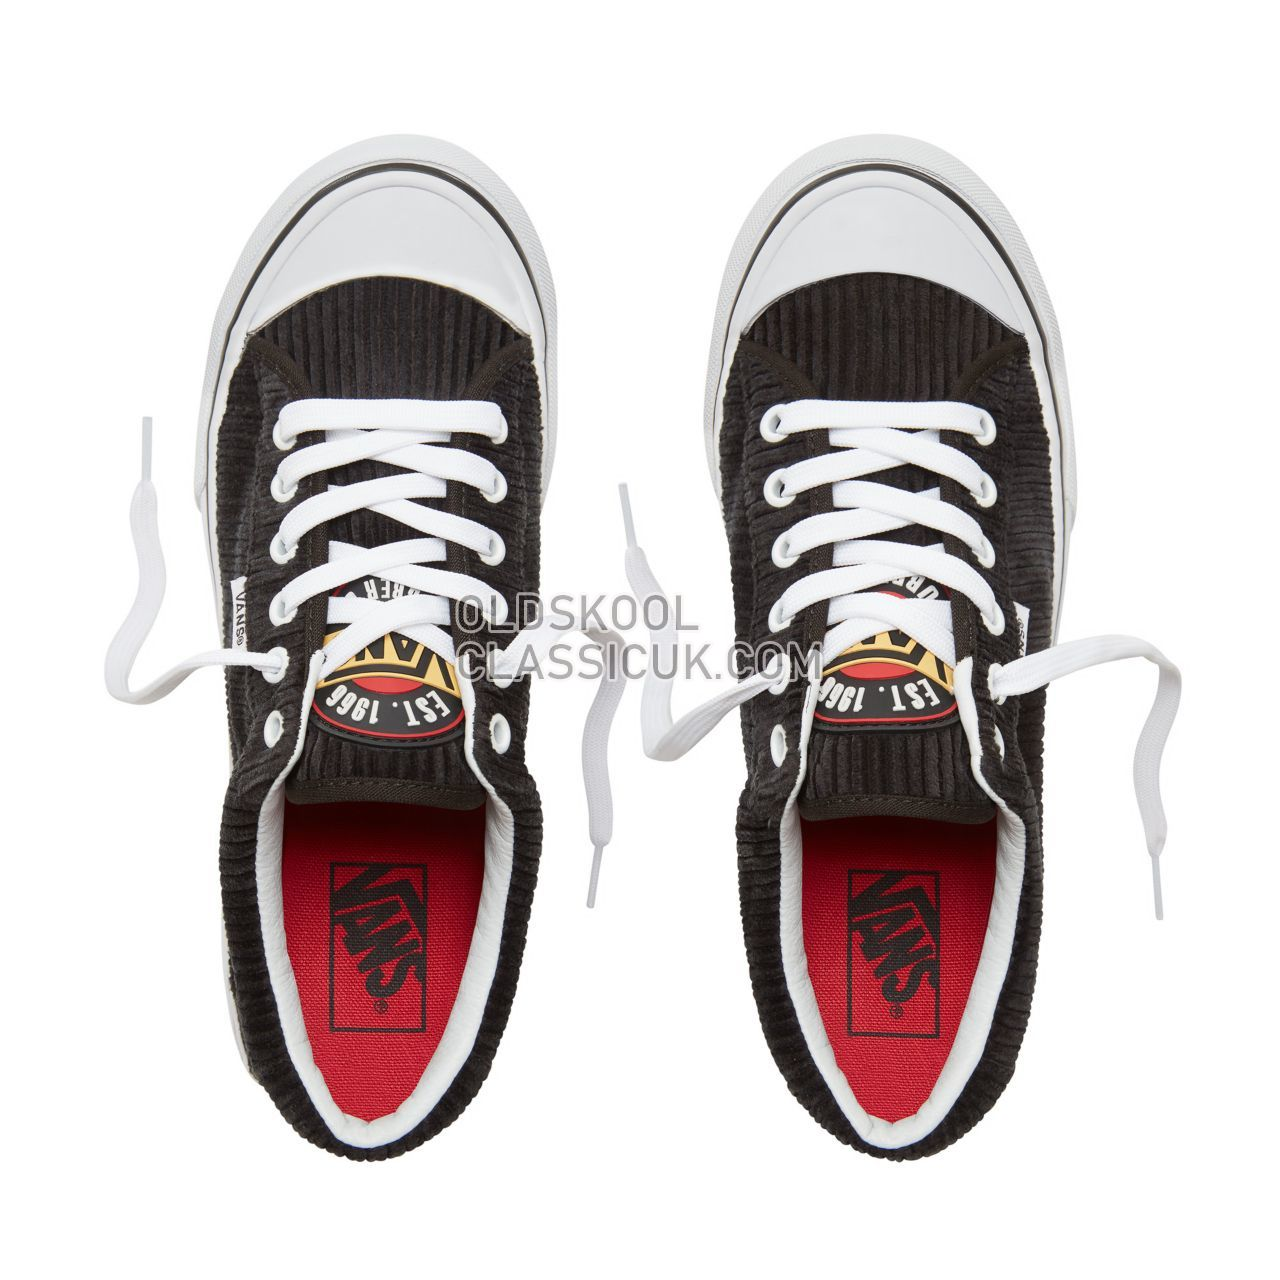 Vans Design Assembly Corduroy Style 29 Sneakers Womens (Design Assembly) Black/True White VA3MVHU55 Shoes